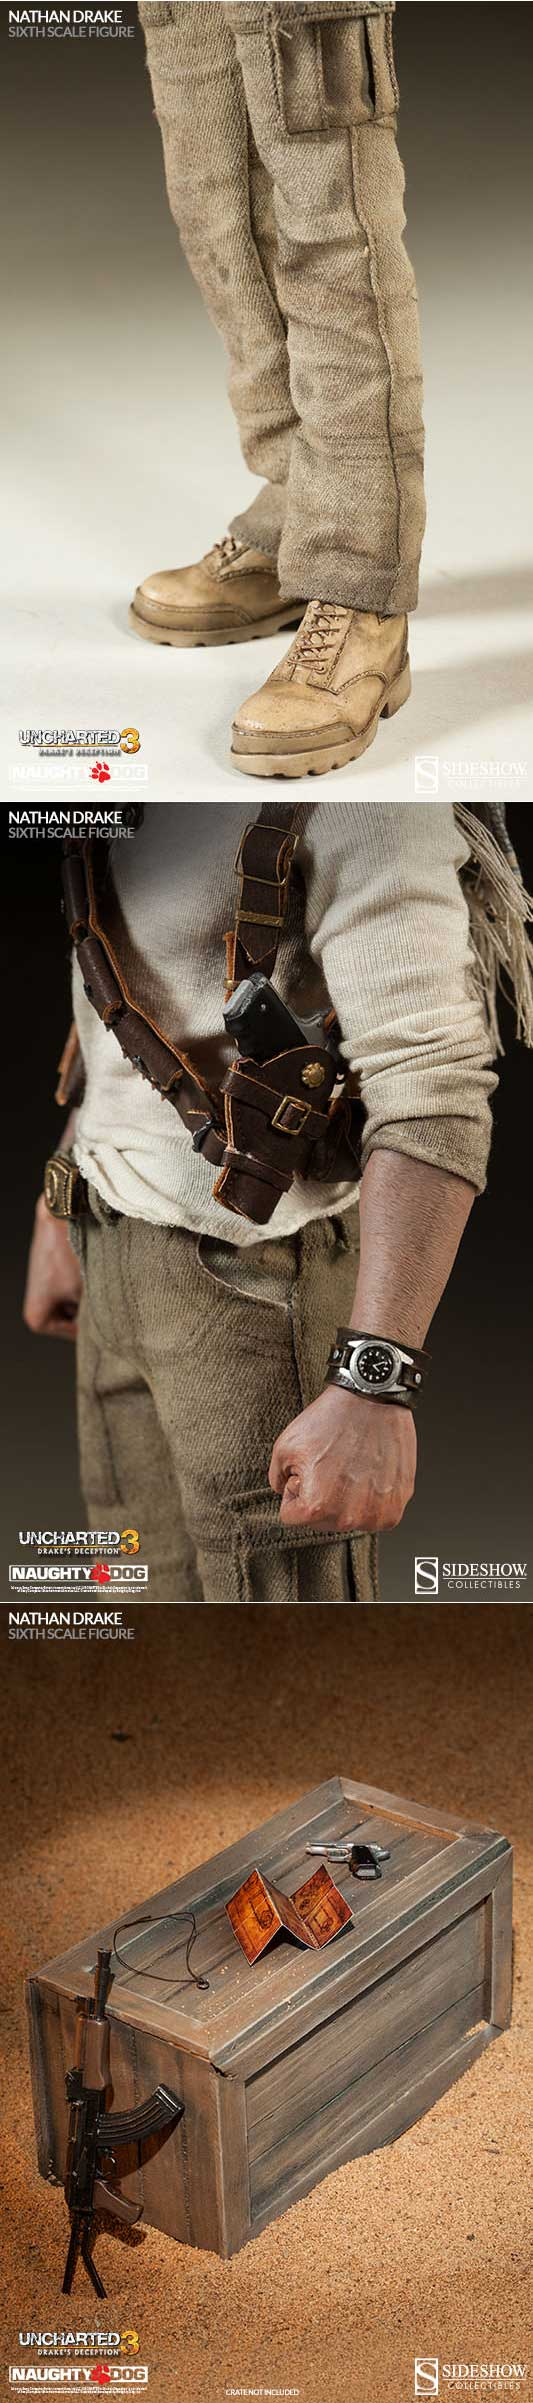 [Nathan Drake Uncharted 3 Sixth Scale Figure]